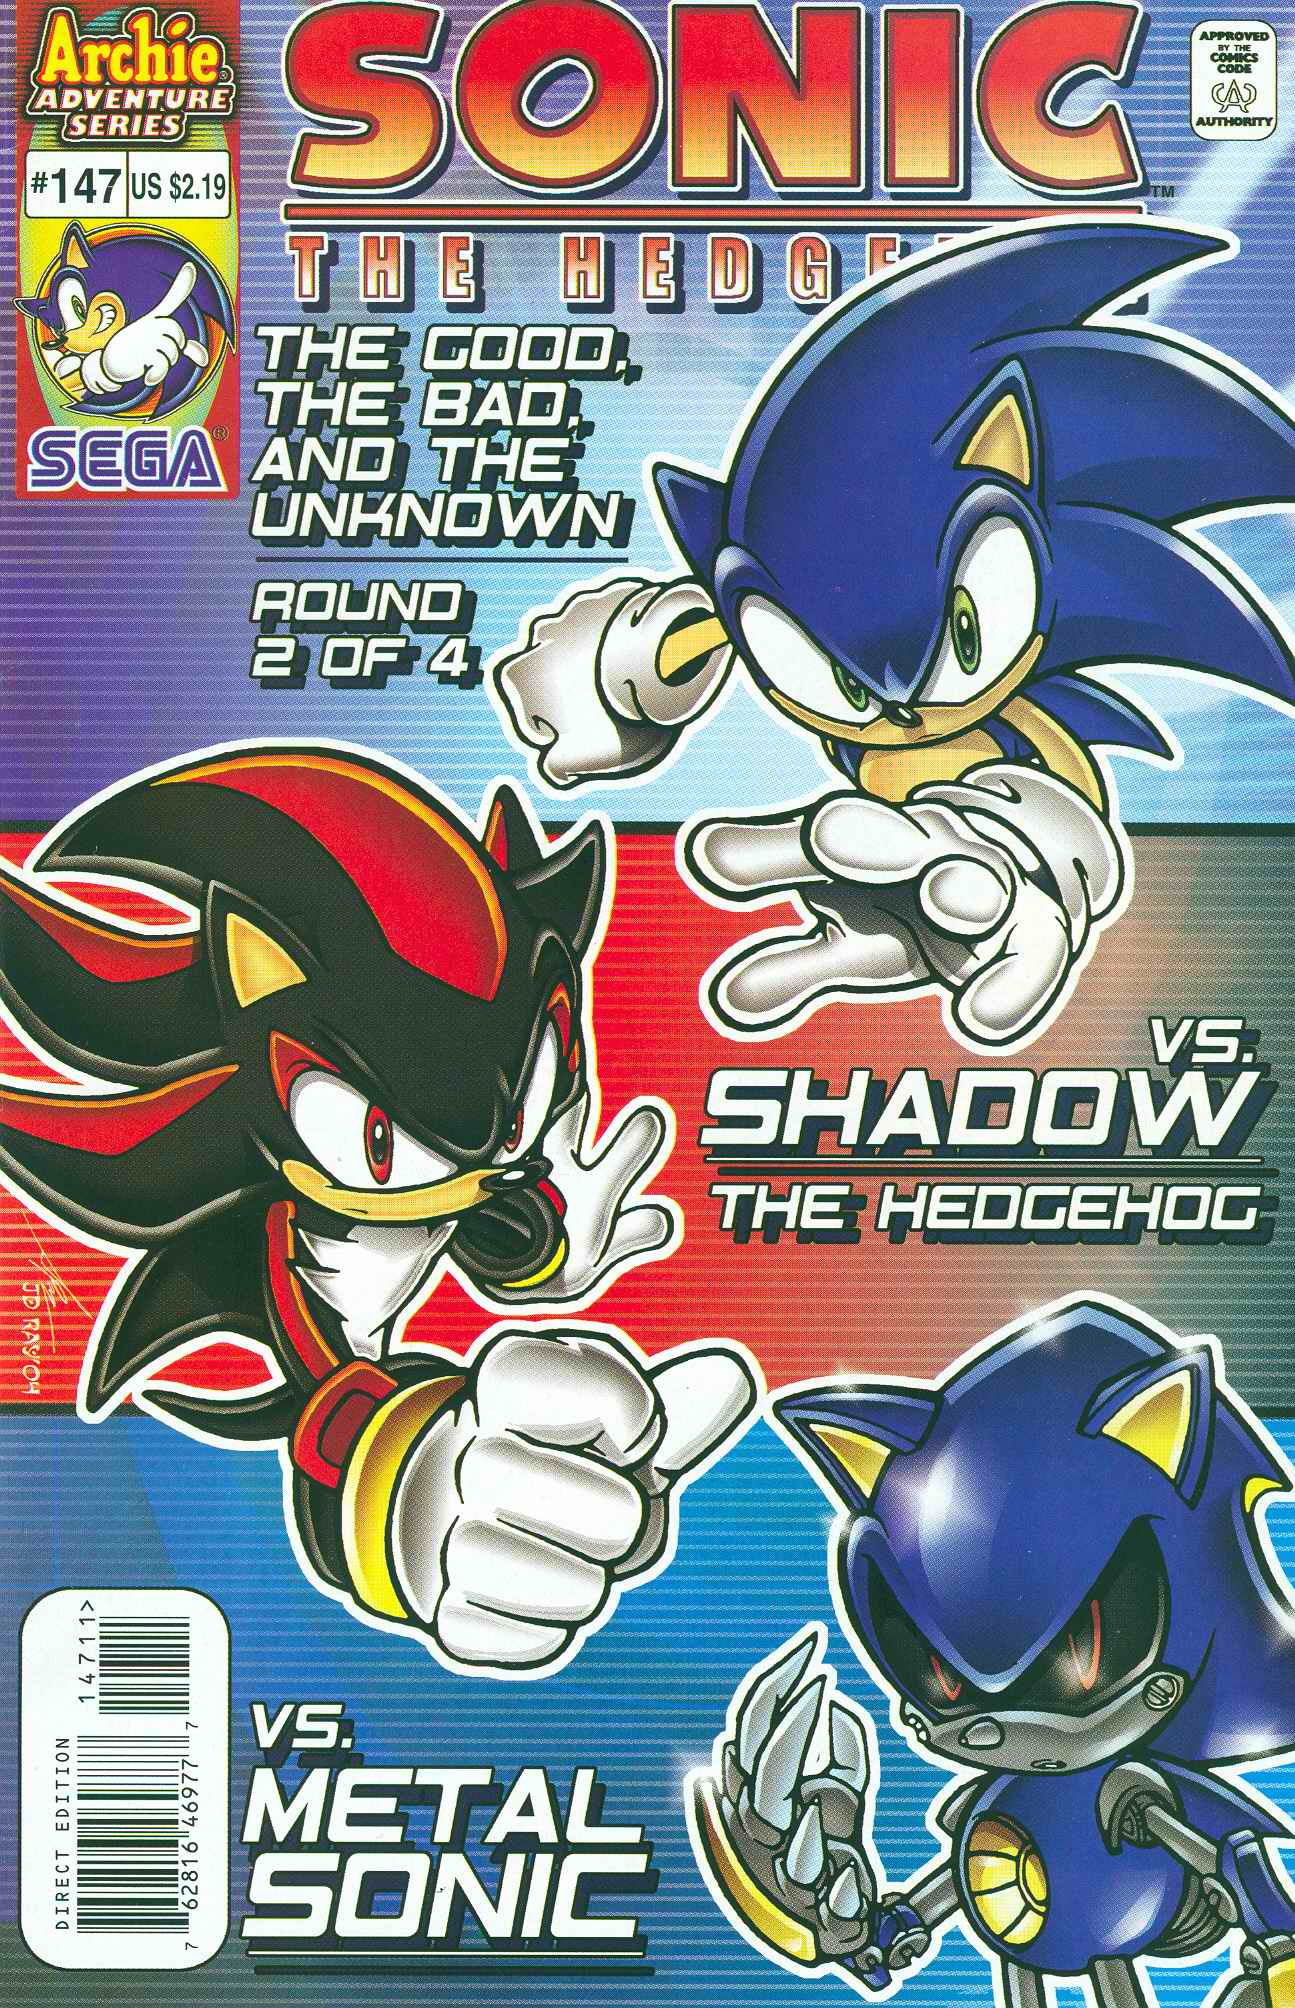 Sonic - Archie Adventure Series May 2005 Cover Page